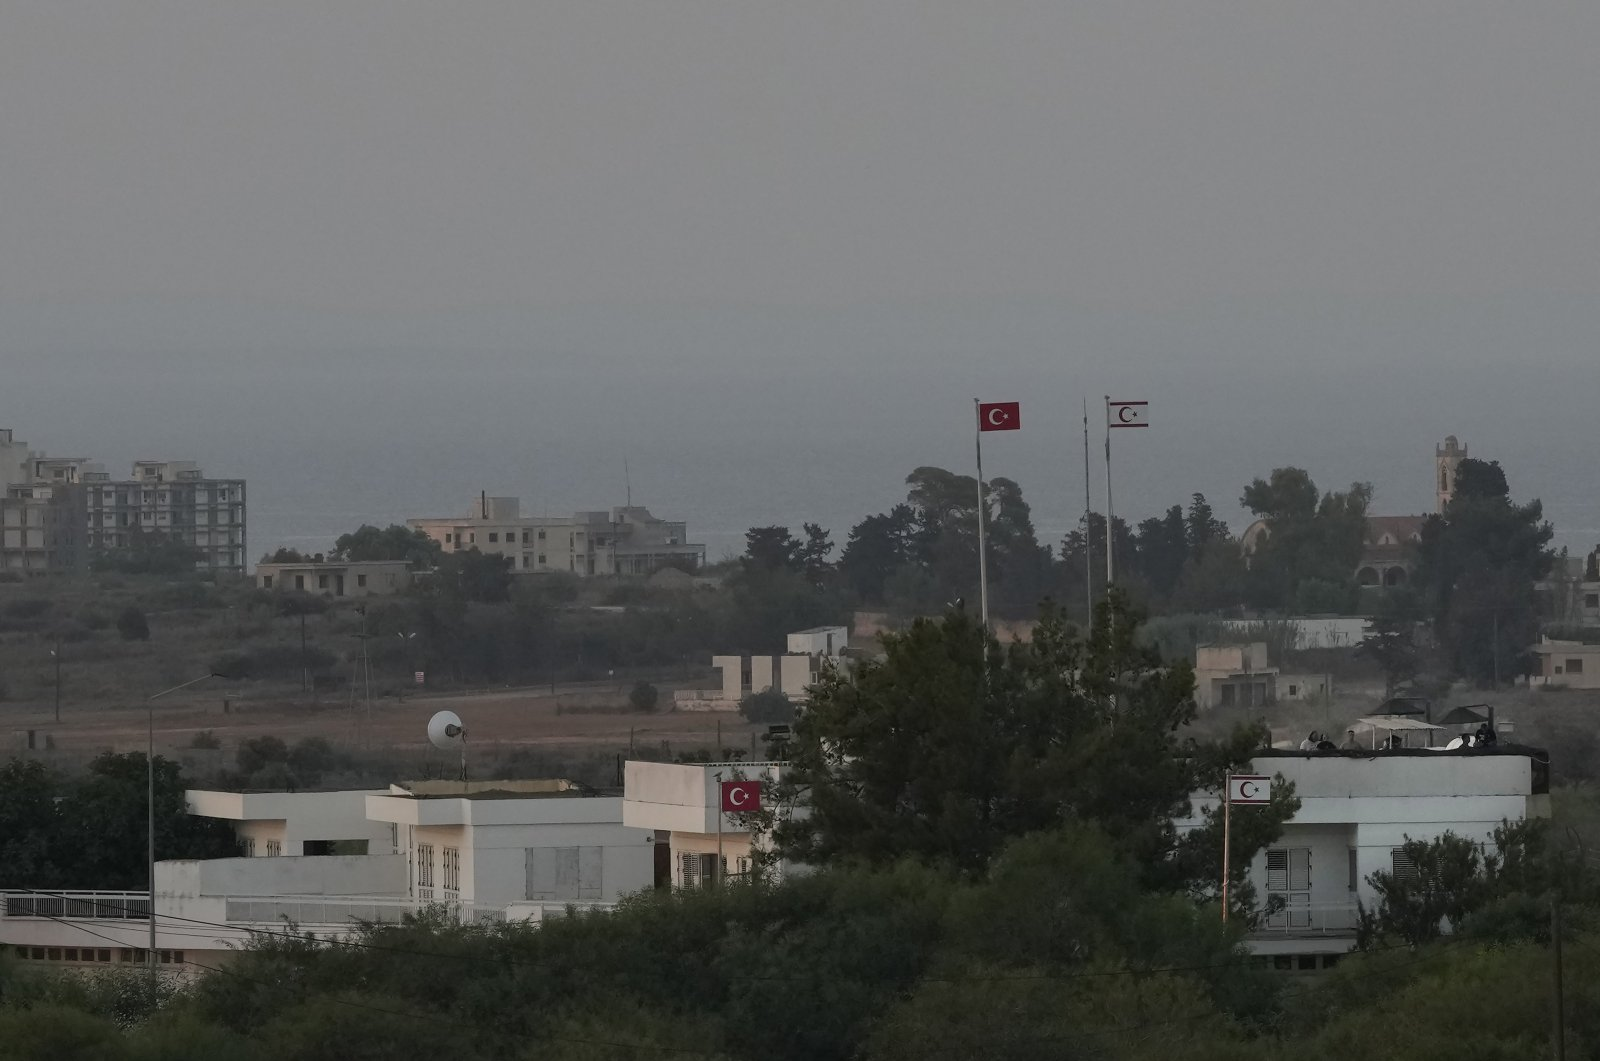 A Turkish military guard post with soldiers is seen near the abandoned city Maraş (Varosha), prior to the visit of President Recep Tayyip Erdoğan on Monday, July 19, 2021. (AP Photo)